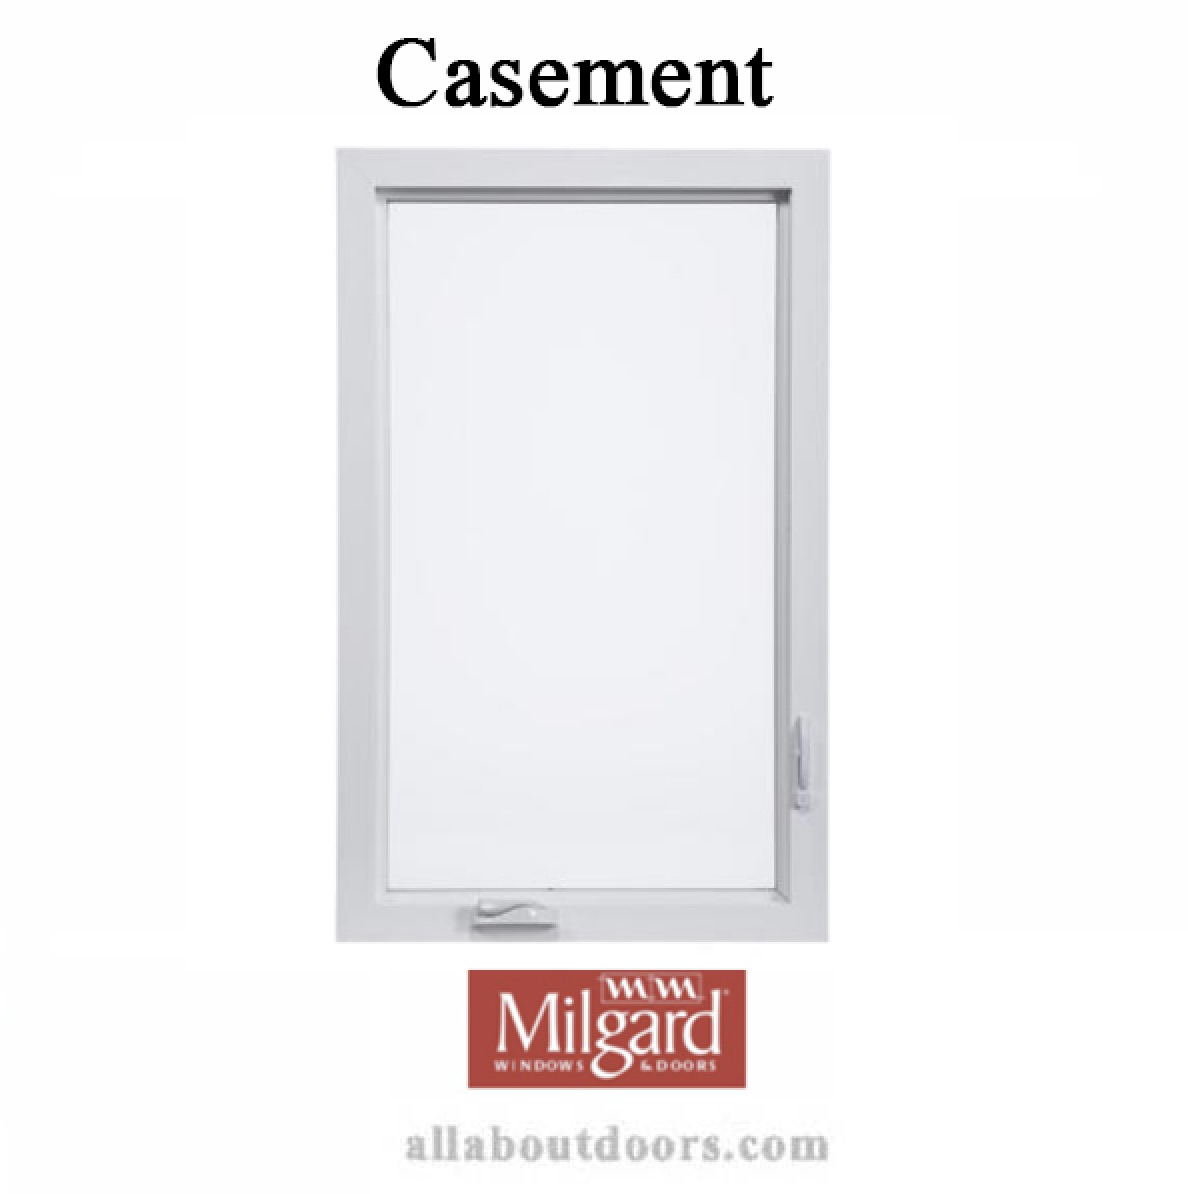 Milgard Casement Window Hardware